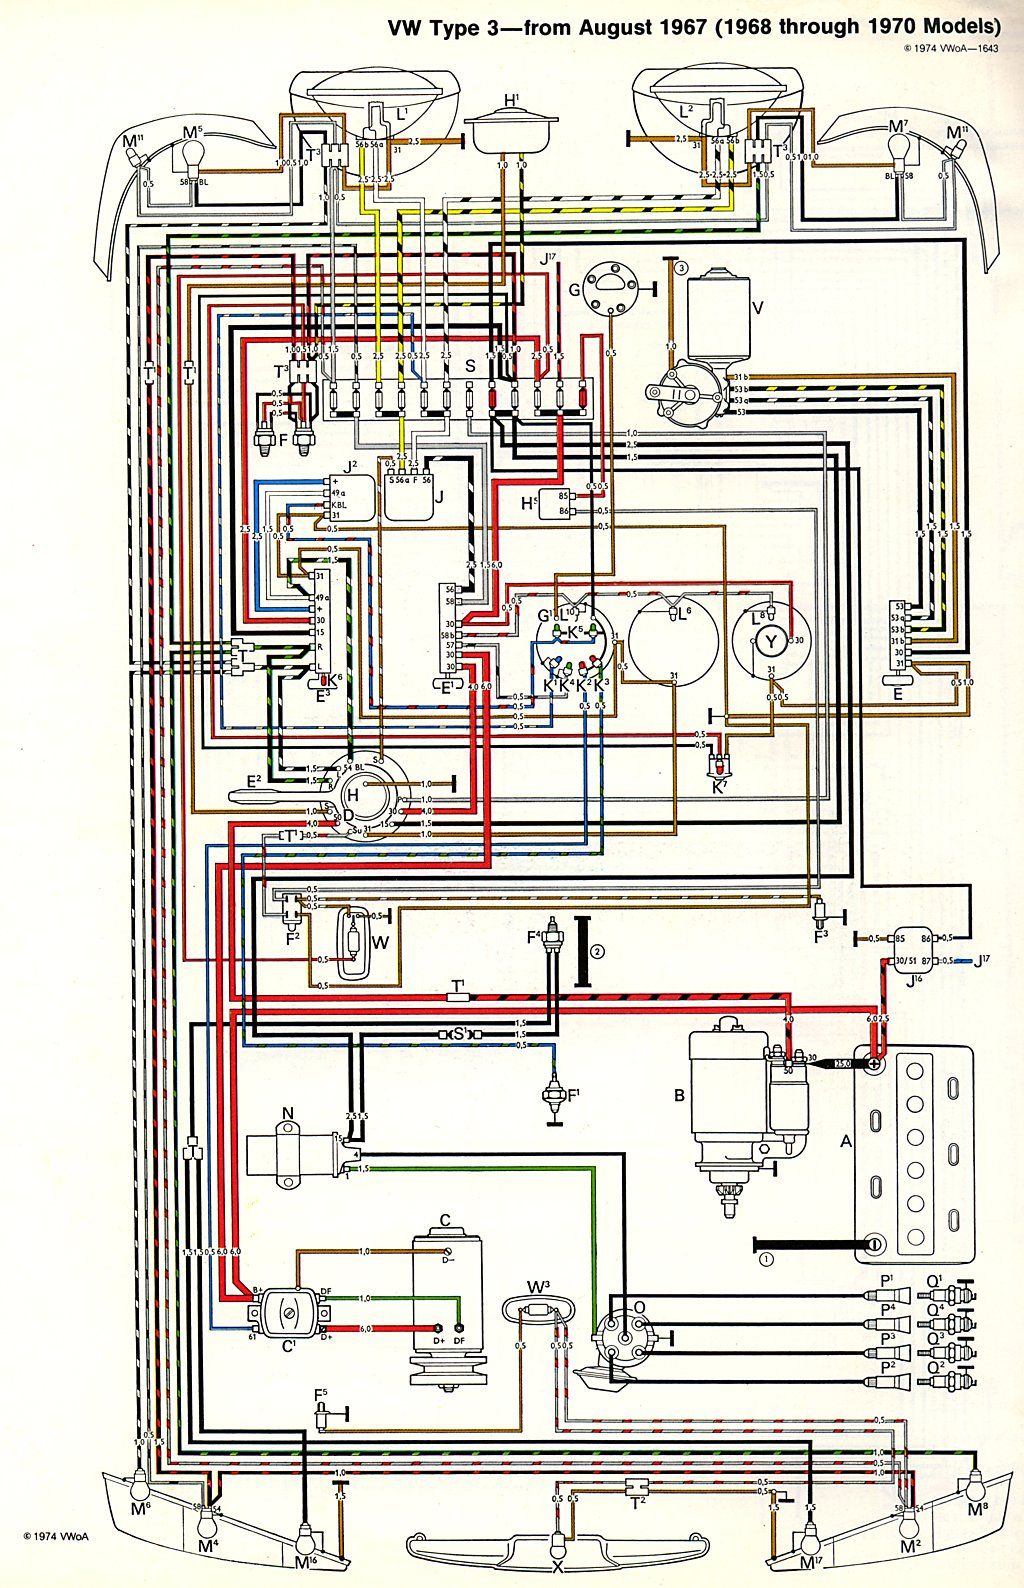 1971 Vw Bug Fuse Wiring Diagram Schematics Diagrams Beetle Box 70 Type 3 Get Free Image About Baja